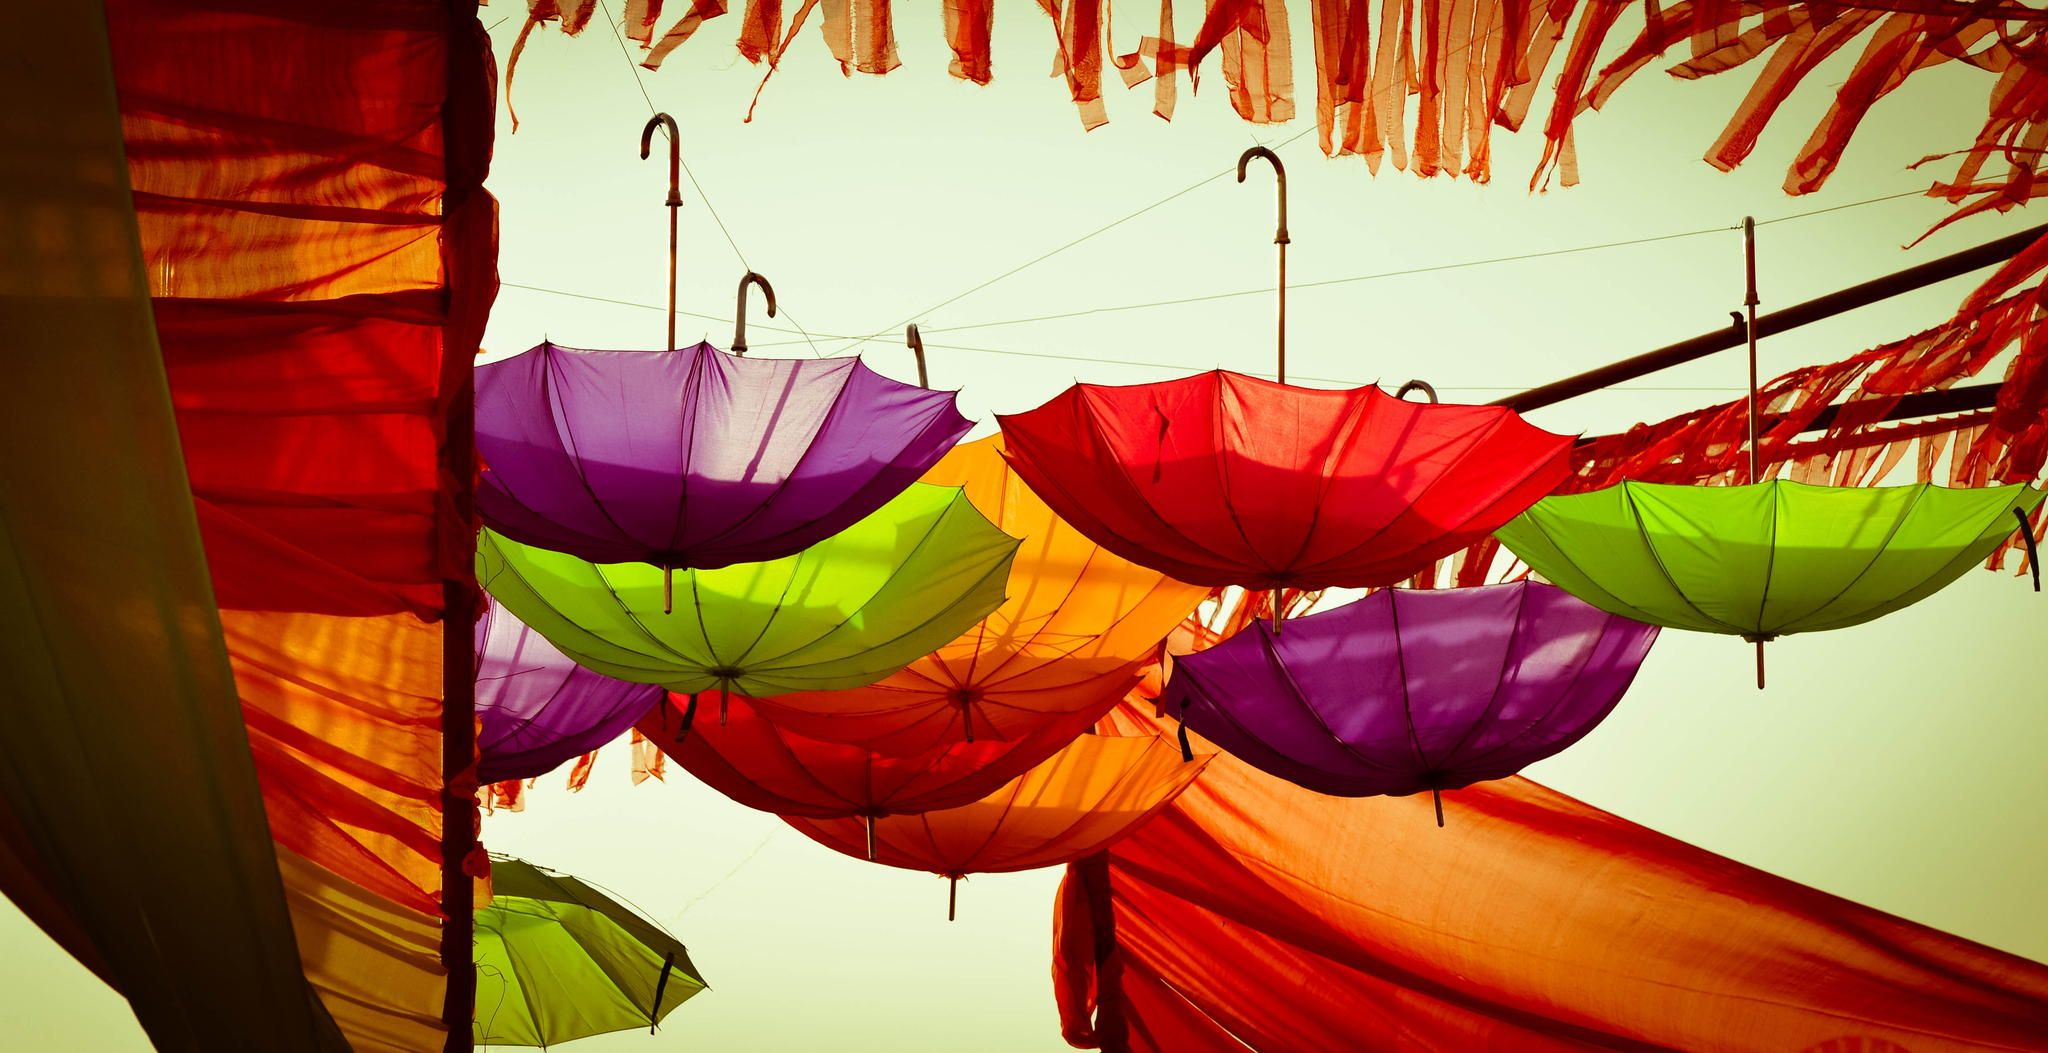 colors by Weddingrams  on 500px